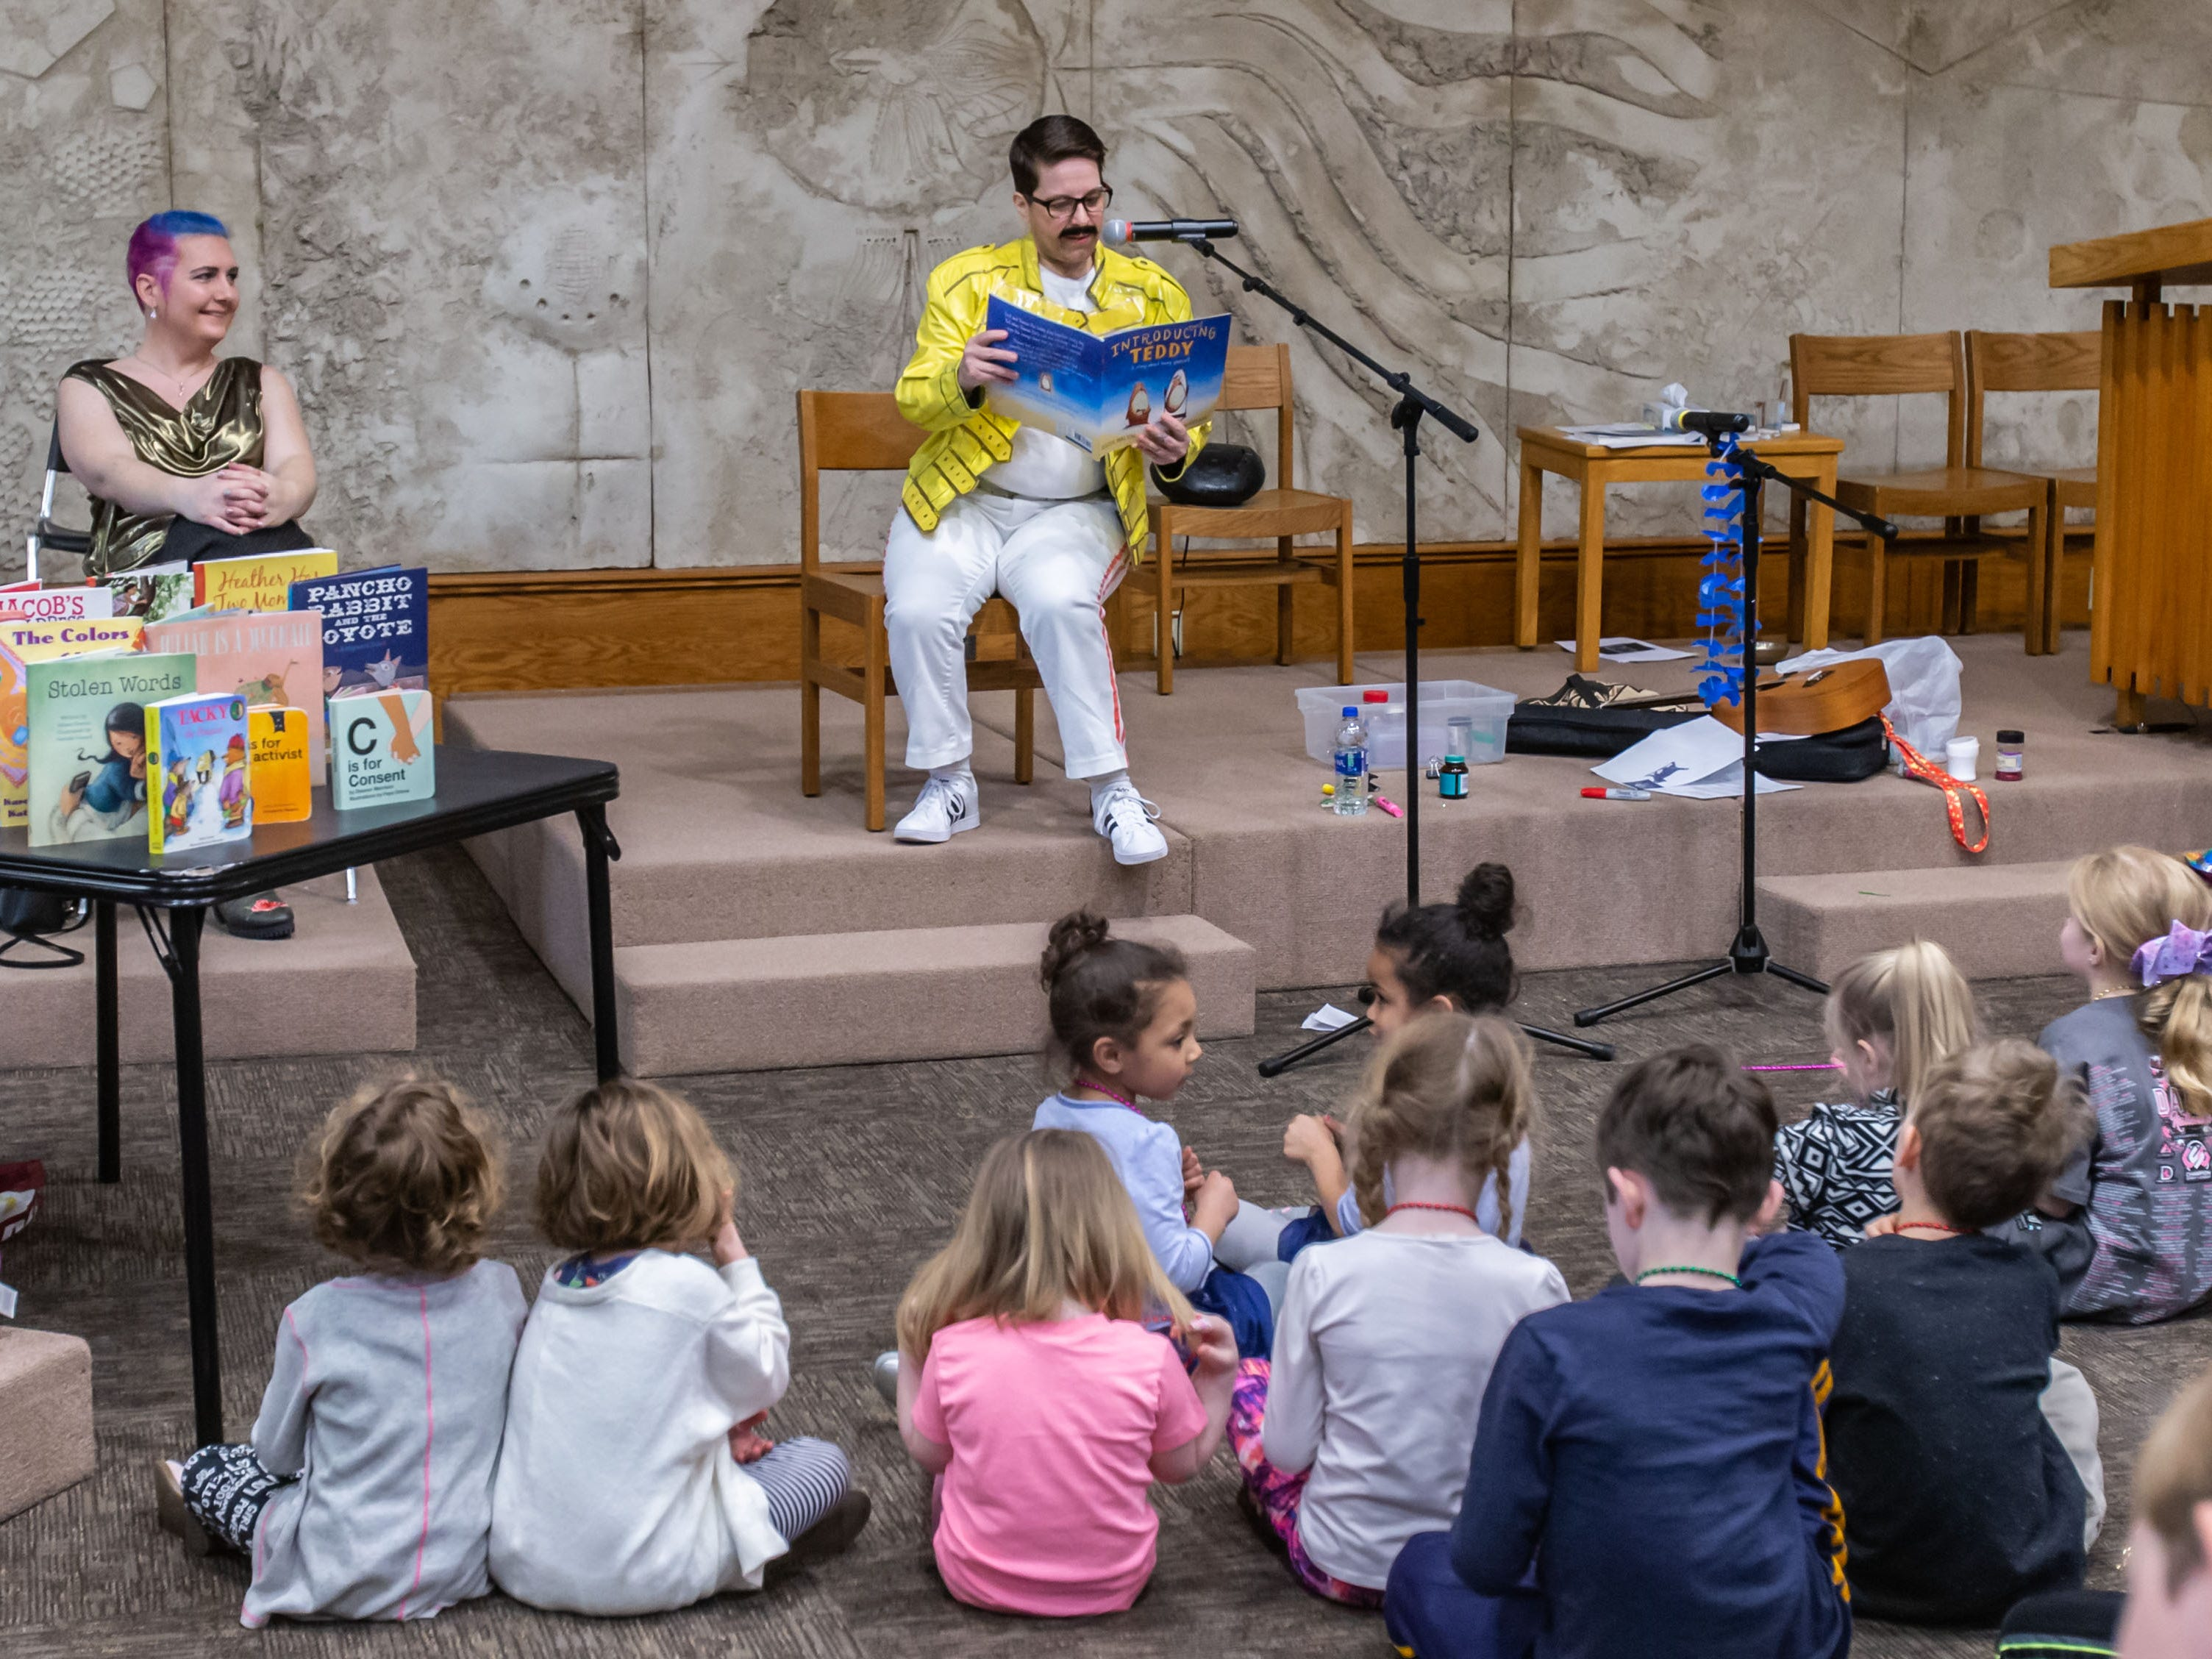 Event organizer Edie Pasek (left) looks on as Mr. Fitswell reads to visitors during Drag Queen Story Hour (DQSH) at Unitarian Universalist Church West in Brookfield on Sunday, April 7, 2019. According to organizers, DQSH is drag queens reading stories. DQSH captures the imagination and play of the gender fluidity of childhood and gives kids glamorous, positive, and unabashedly queer role models. kids are able to see people who defy rigid gender restrictions and imagine a world where people can present as they wish, where dress up is real.